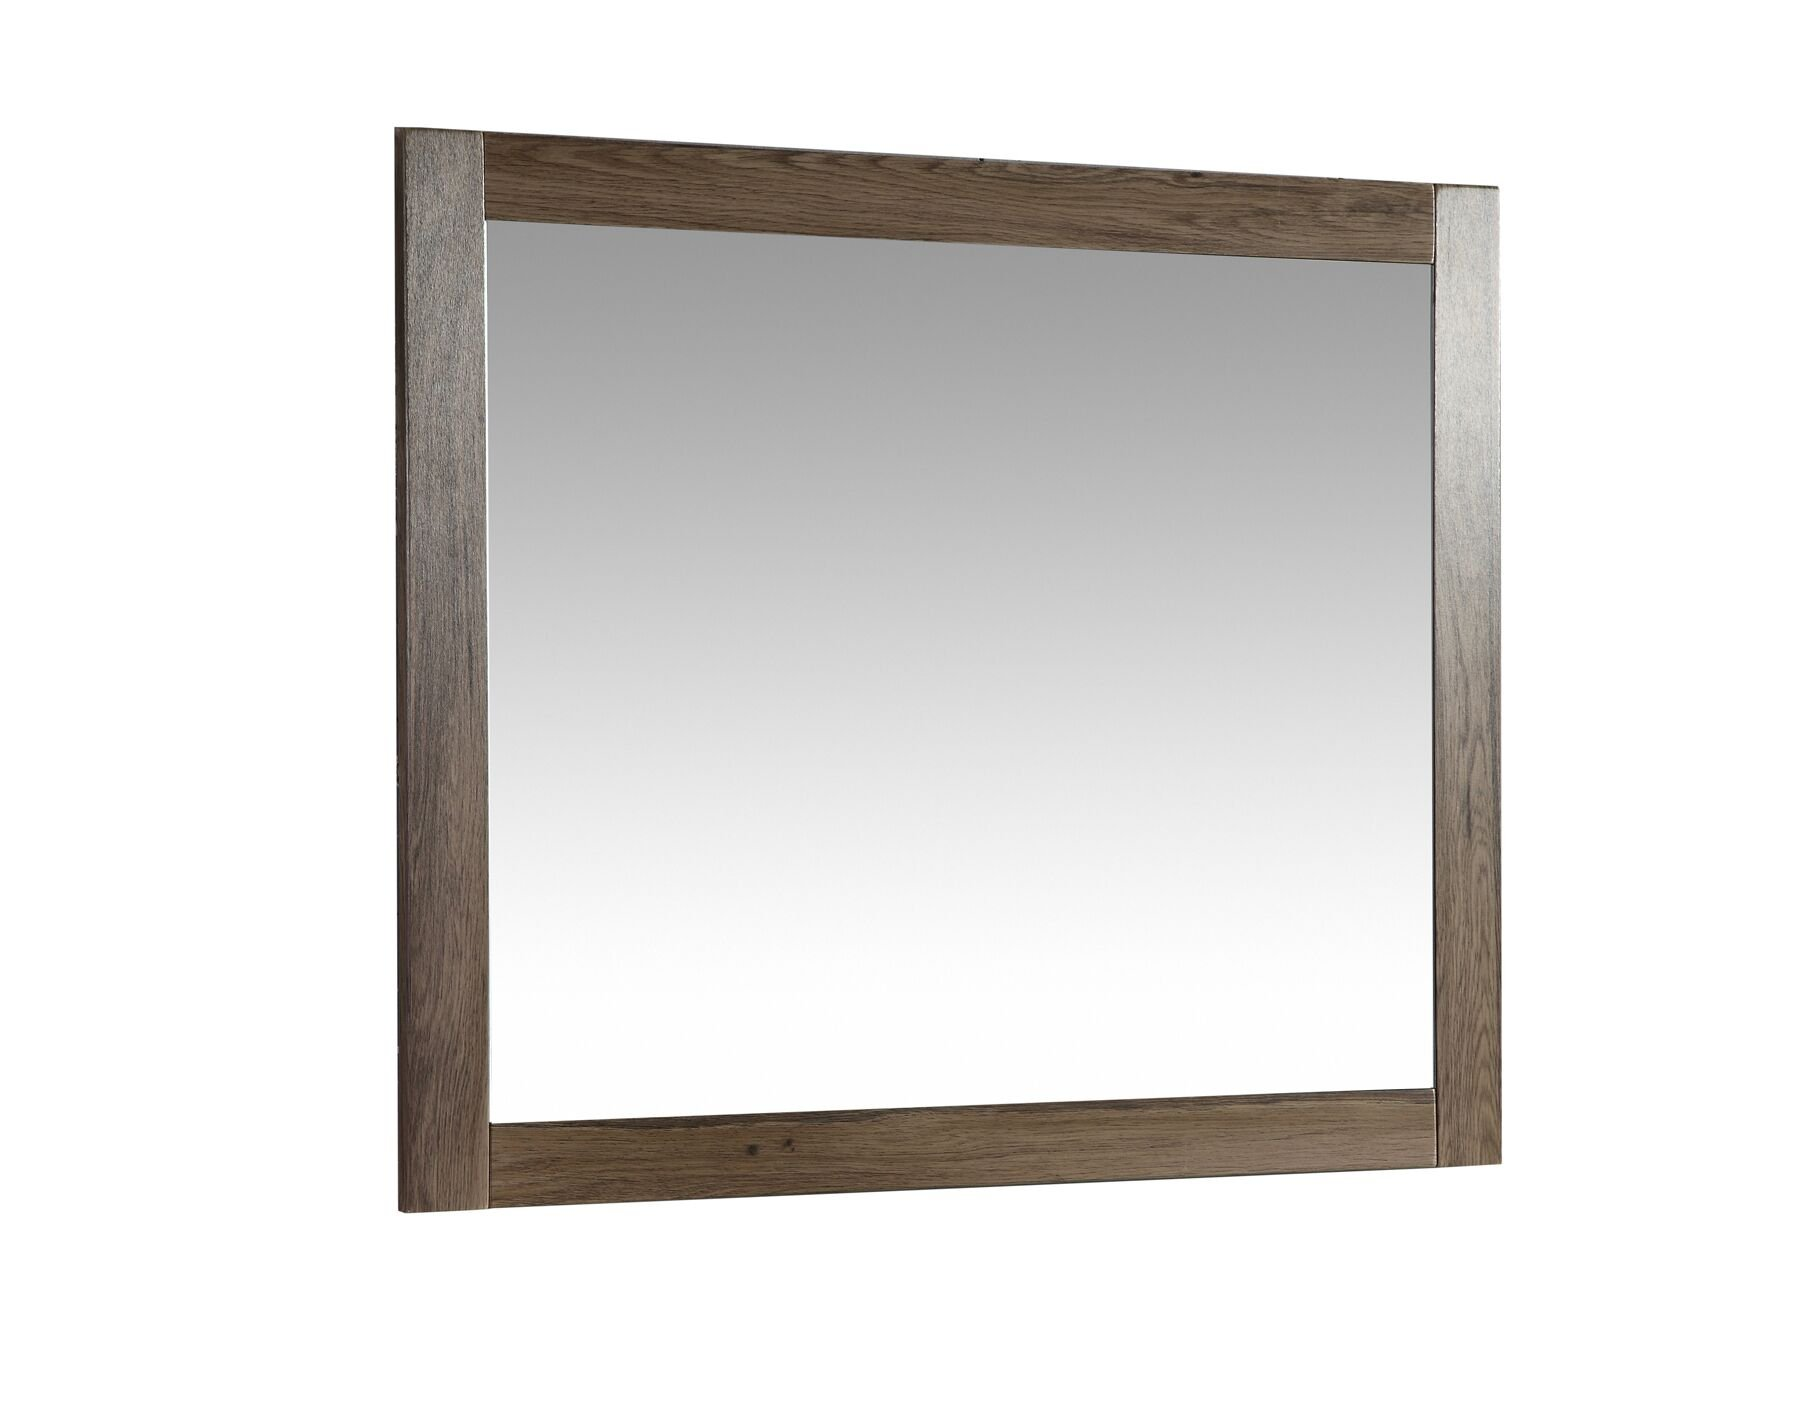 The Ivy Modern 30 Inch Wall Mounted Mirror by Flairwood Decor